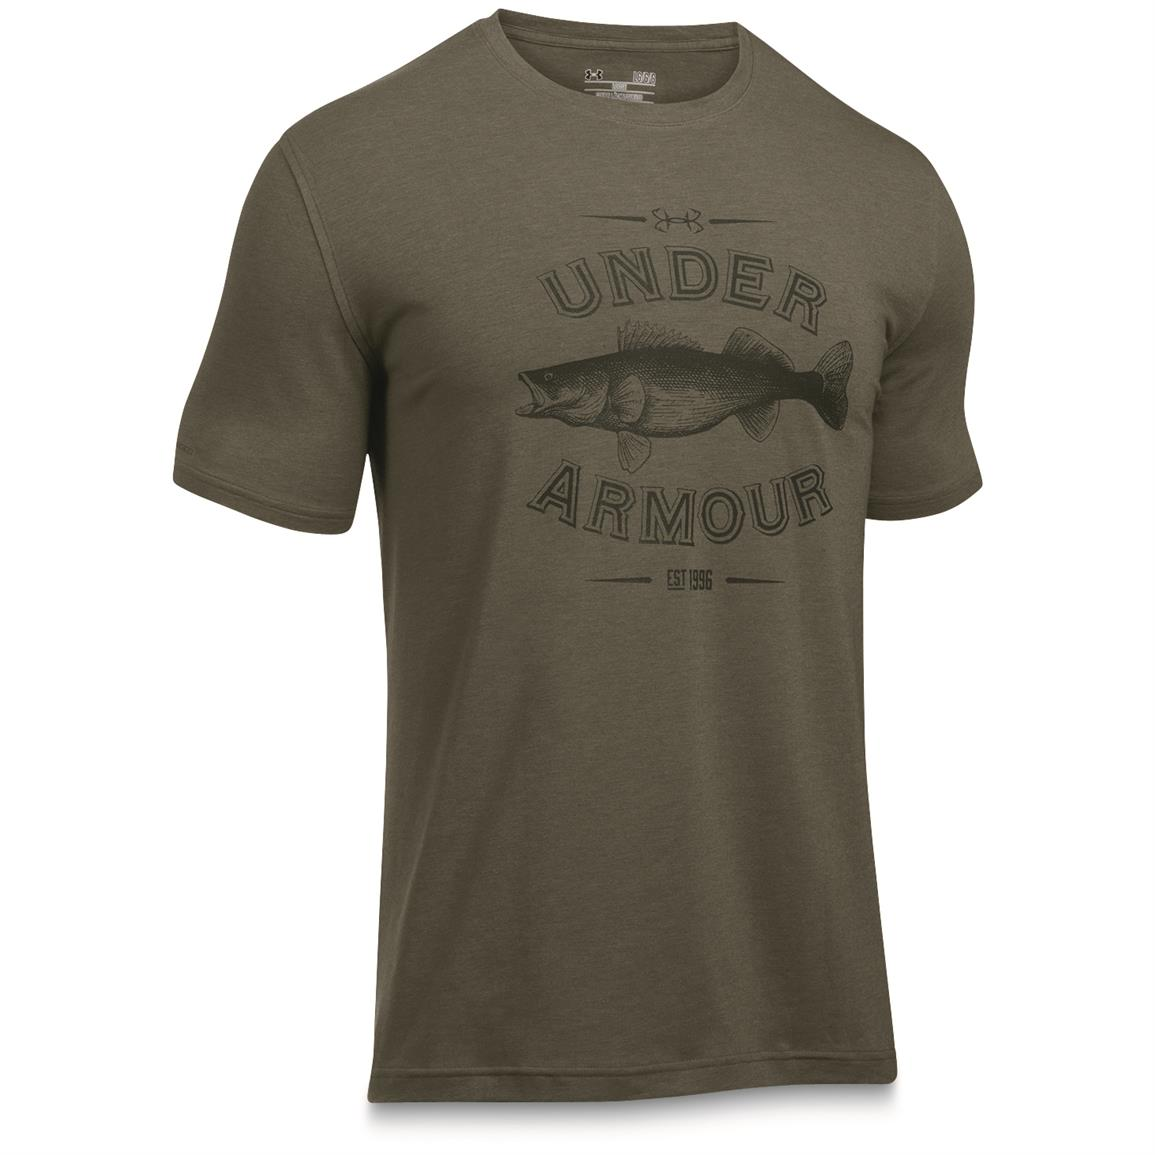 Under Armour Men's Classic Fish Tees, Walleye/Foliage Green